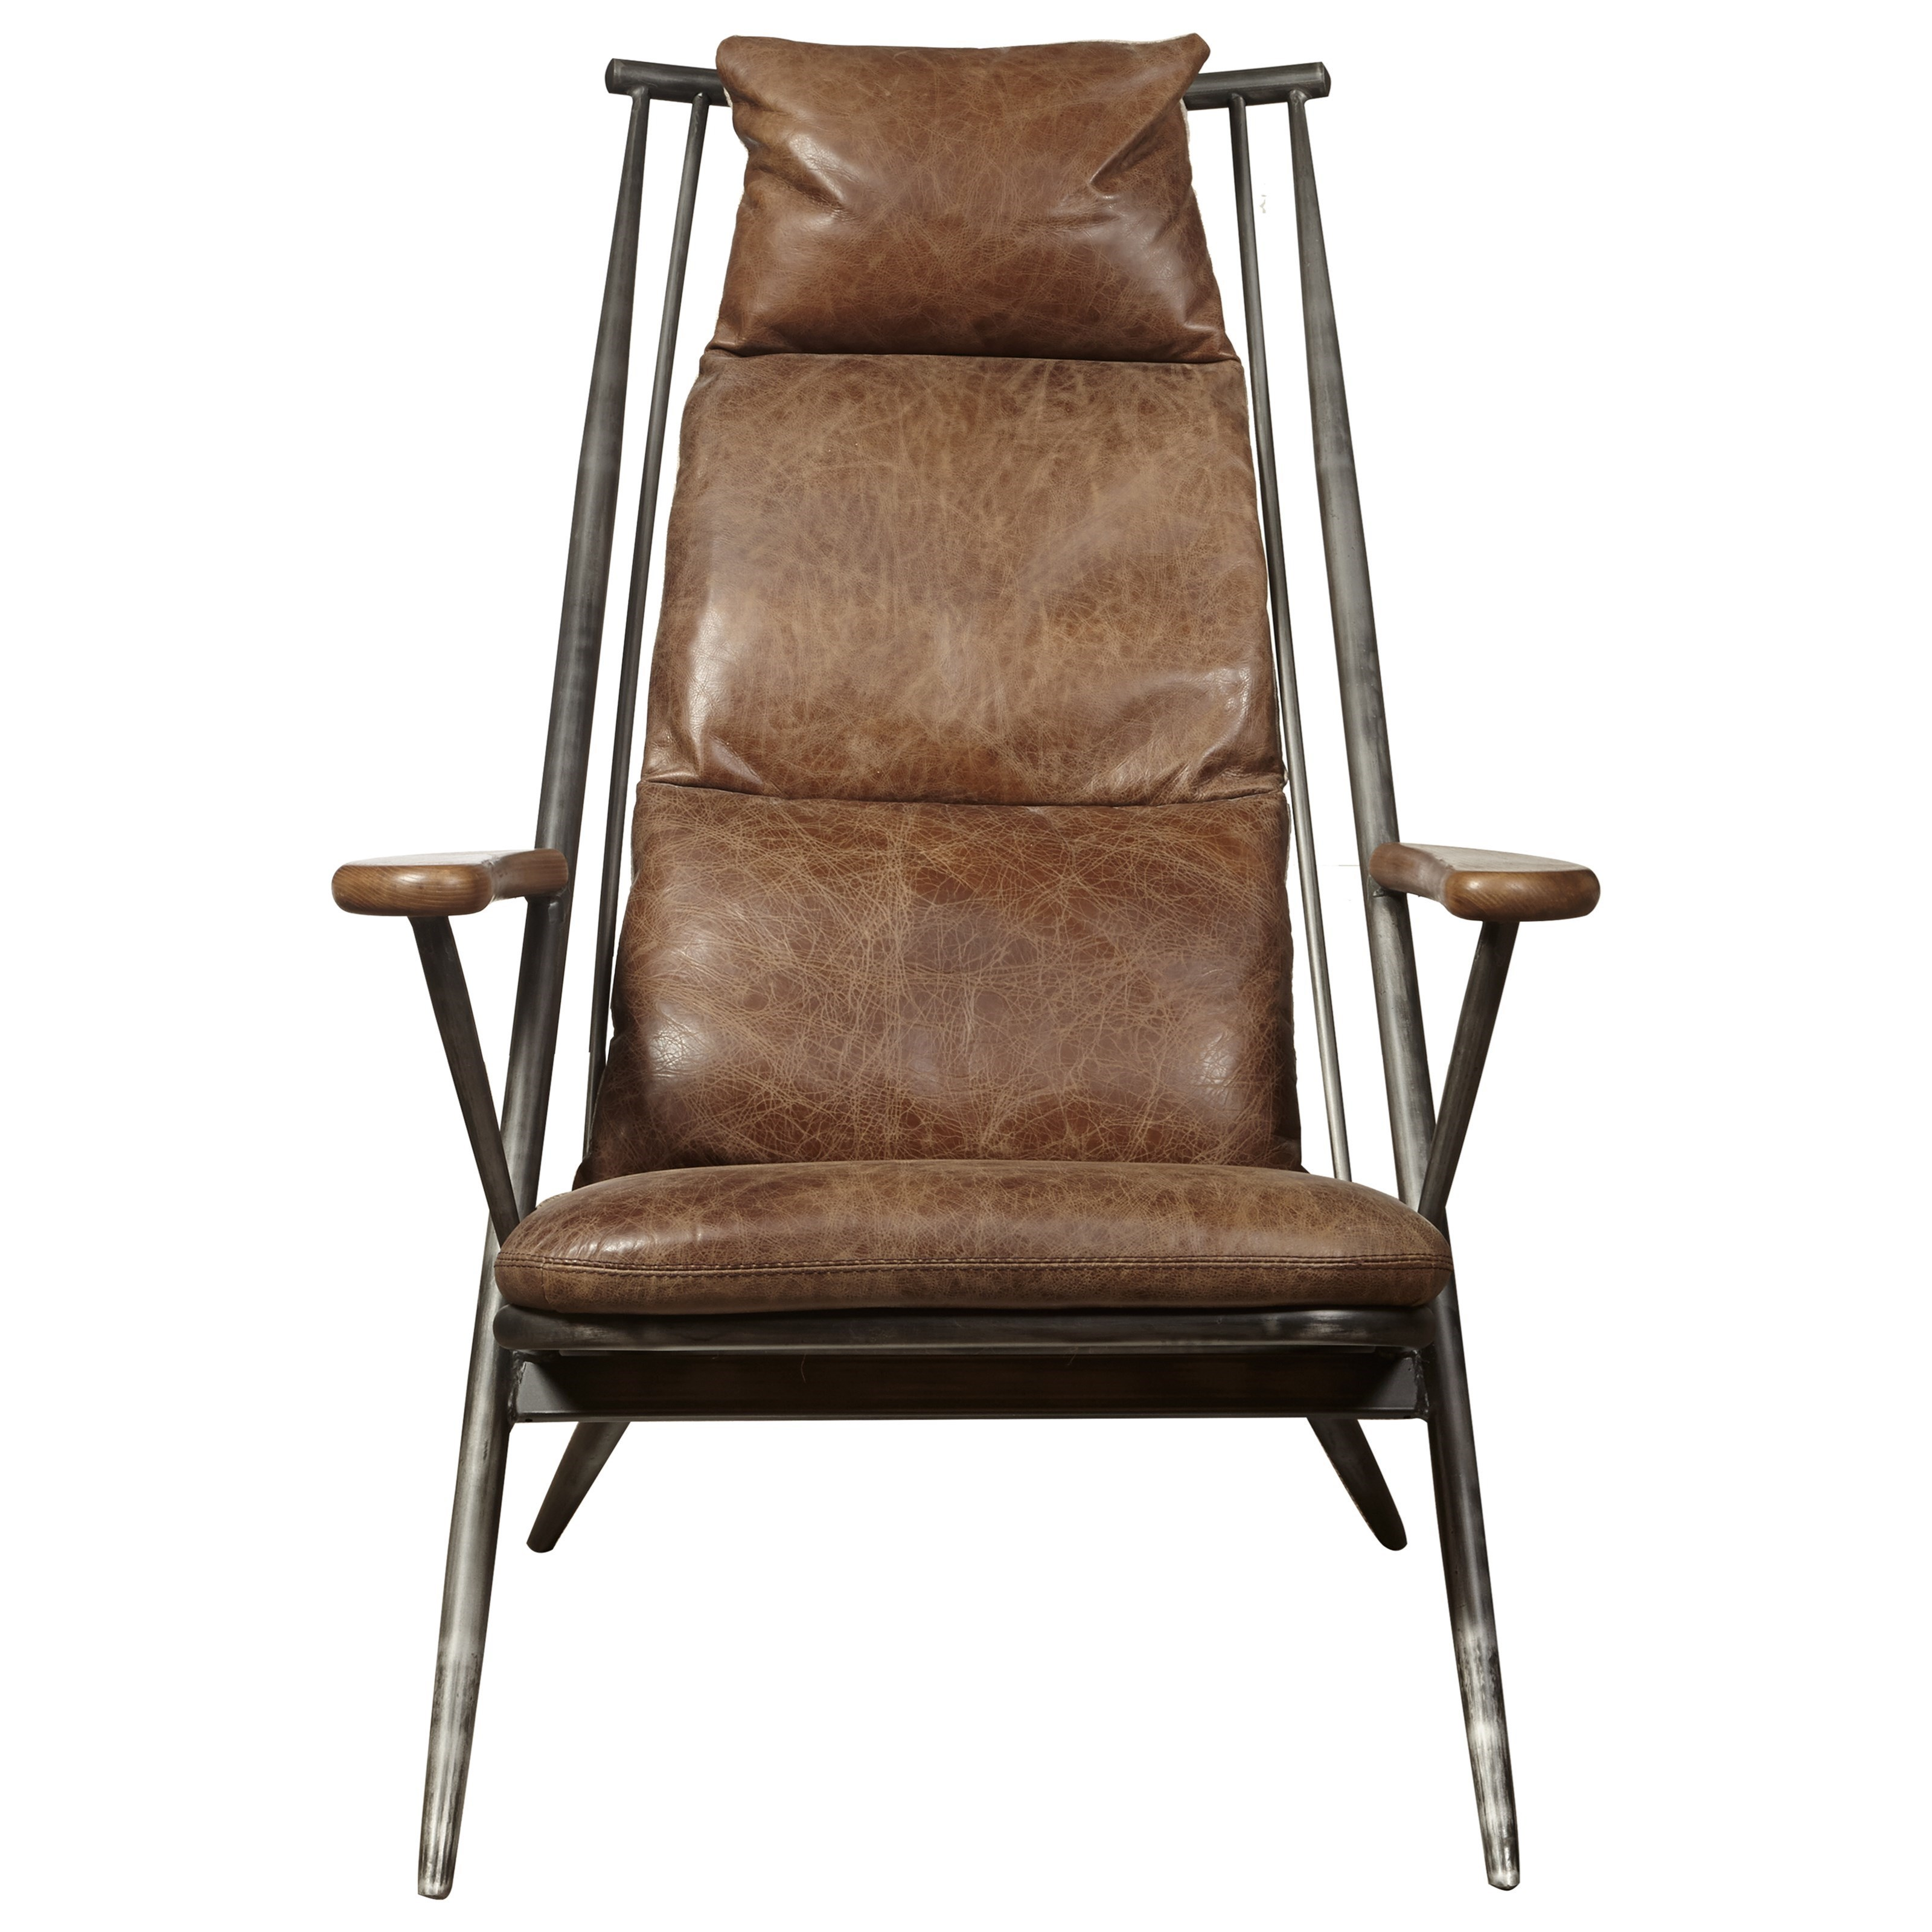 Accent Chairs Brenna Chair by Accentrics Home at Lindy's Furniture Company